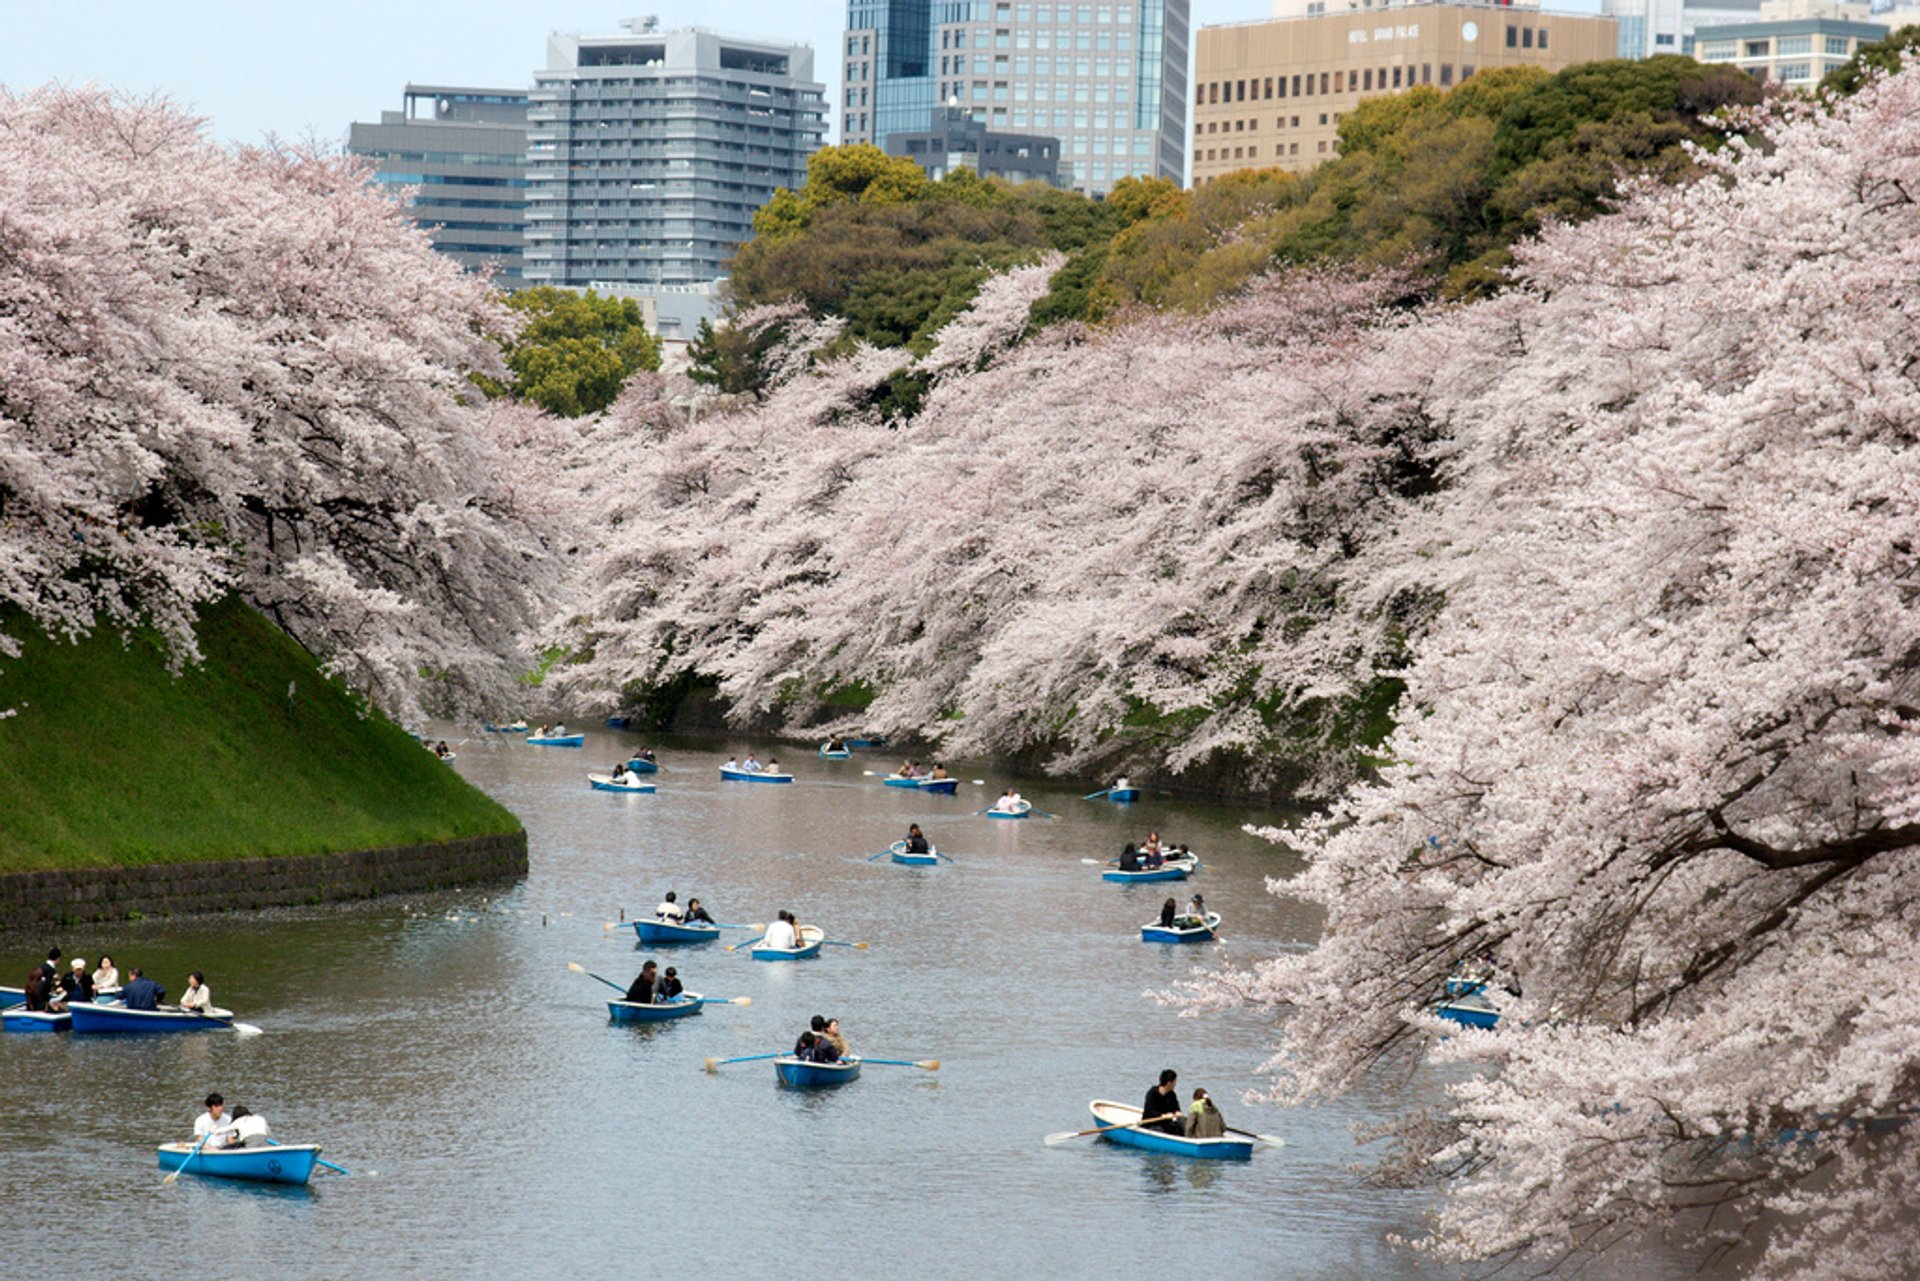 Chidorigafuchi Green Way near the Imperial Palace in Tokyo 2020